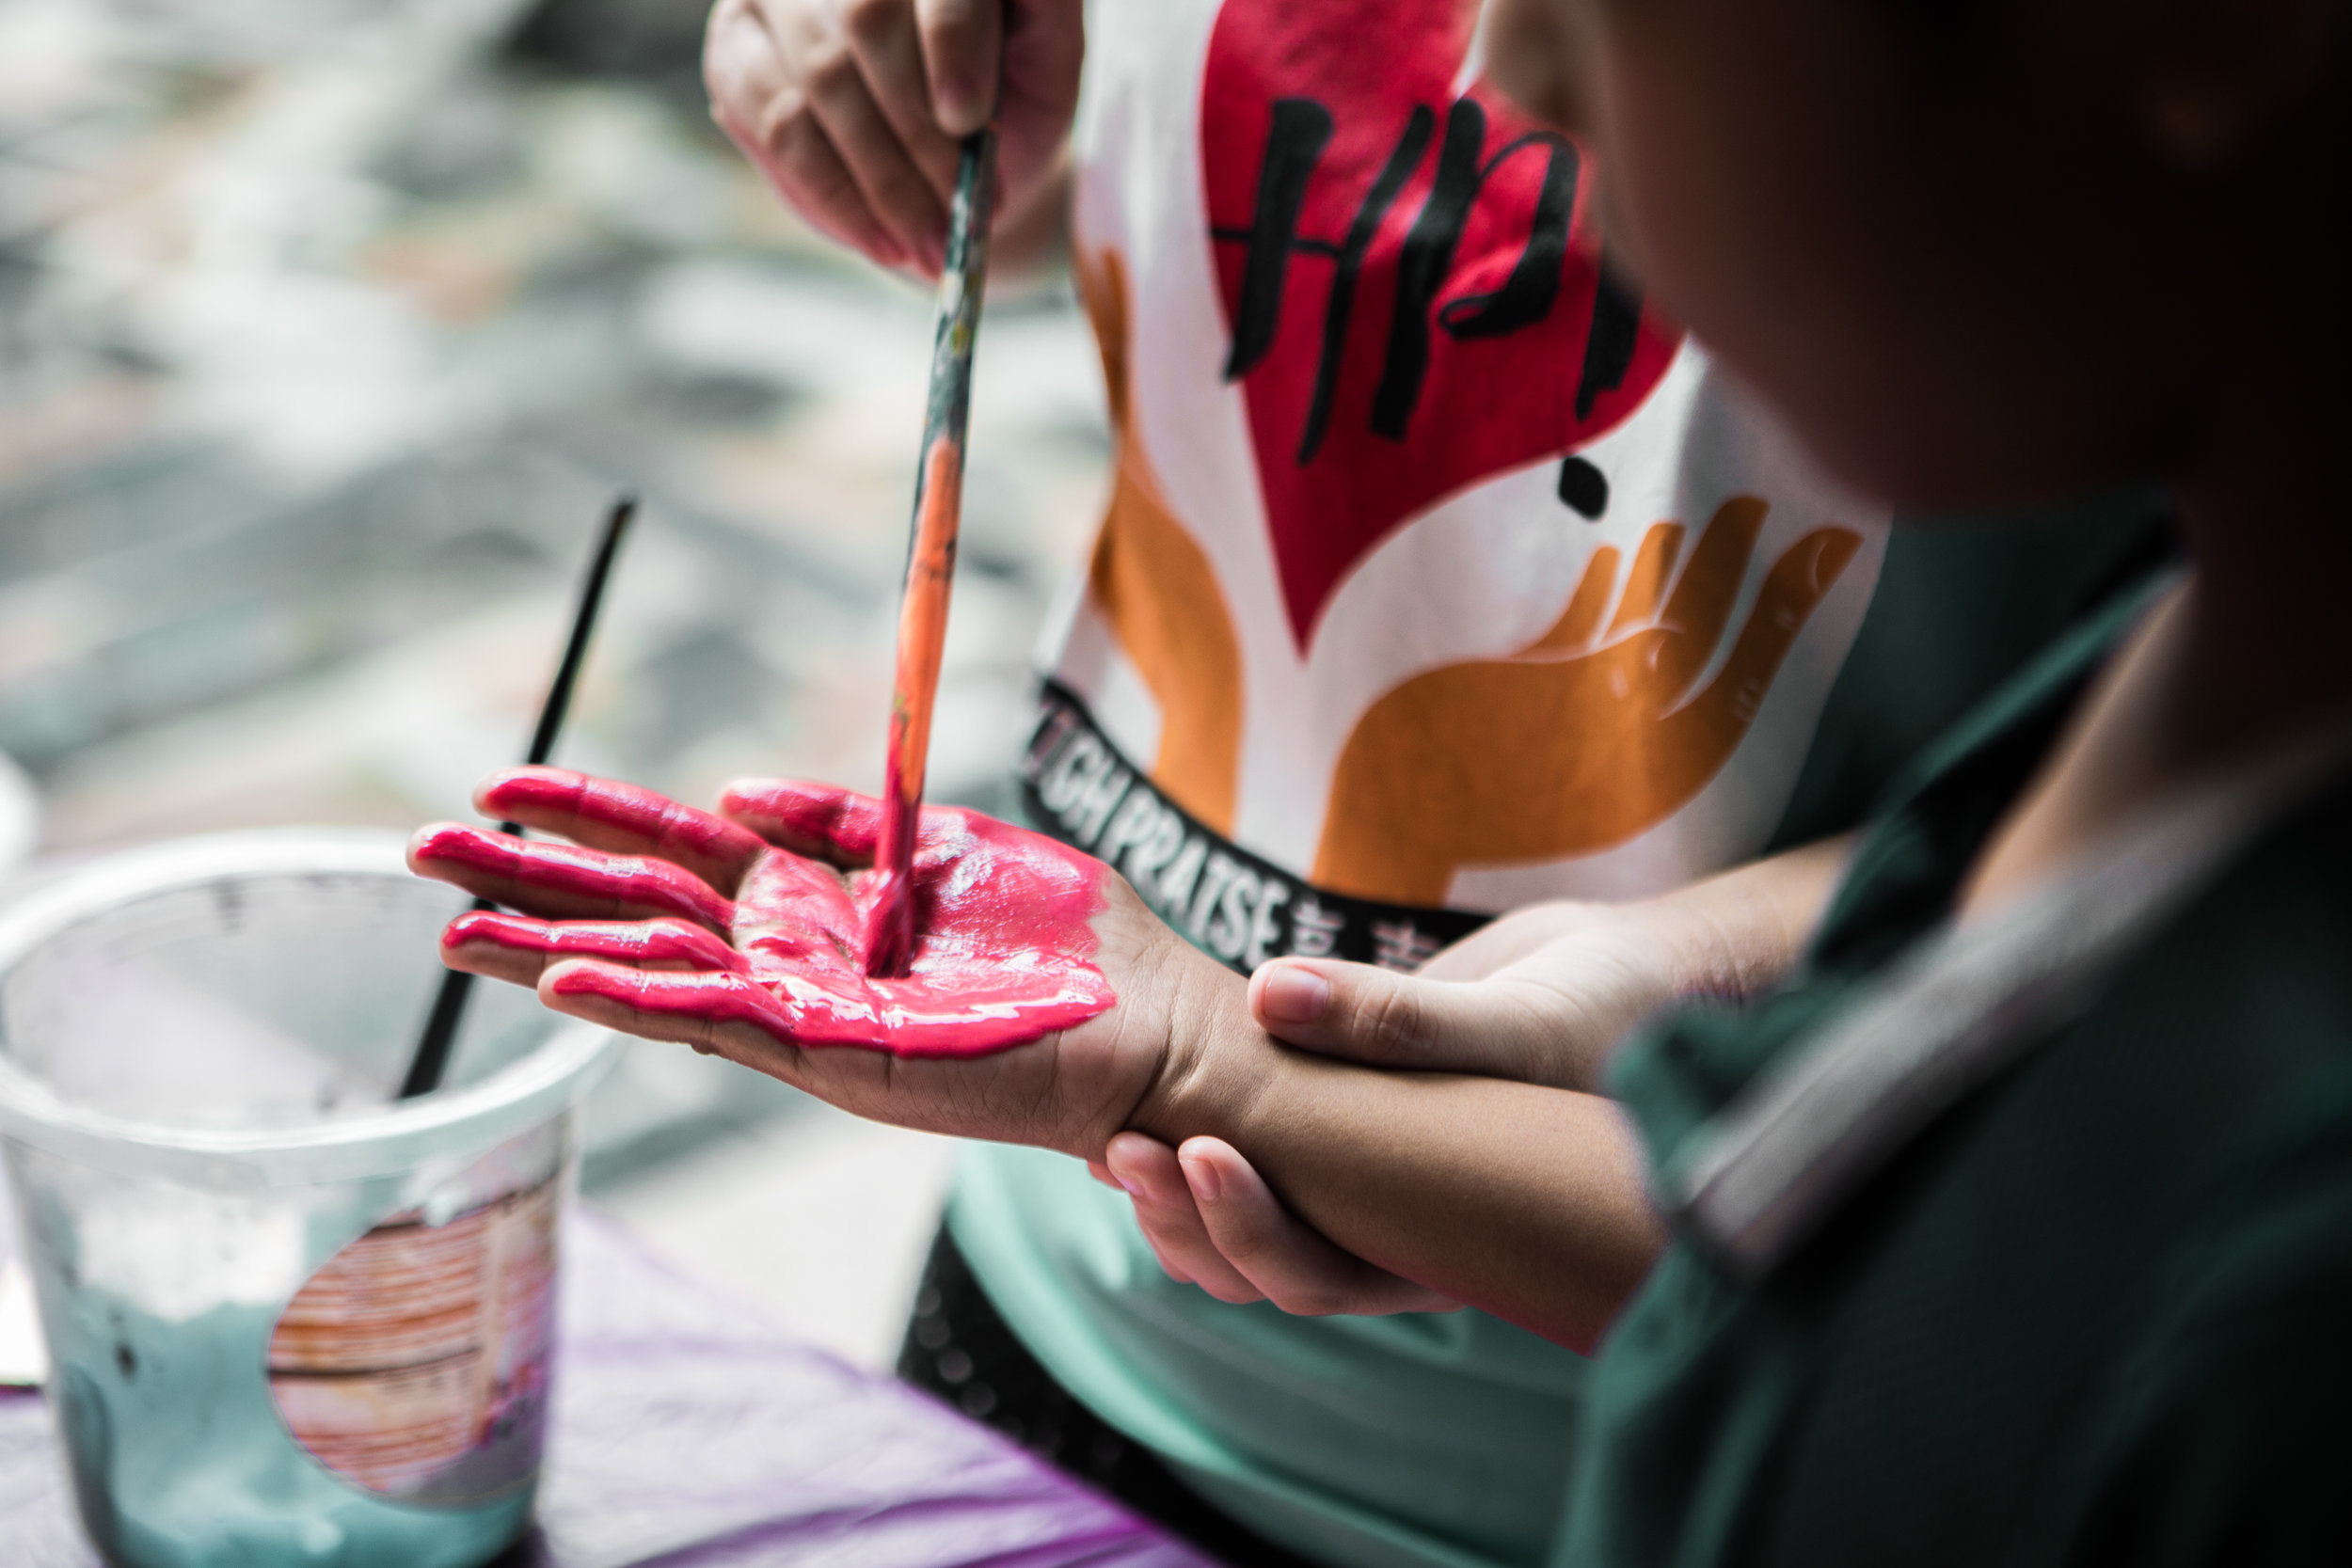 - Messy masterpieces